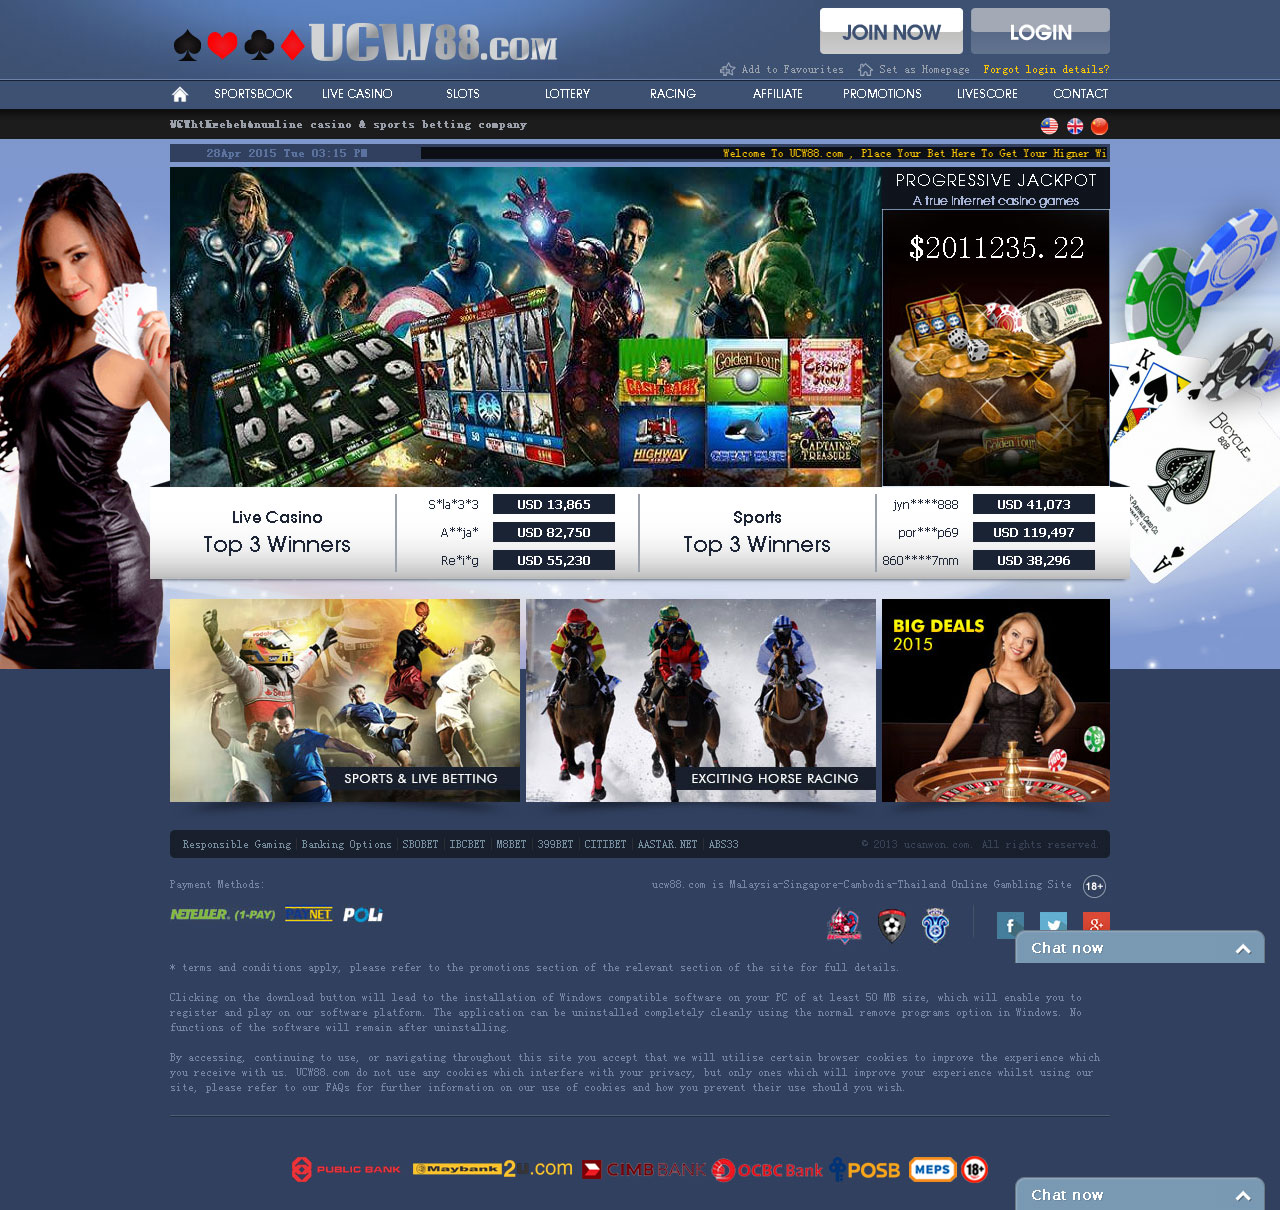 Online Casinos – Play at Trusted Online Casino Sites